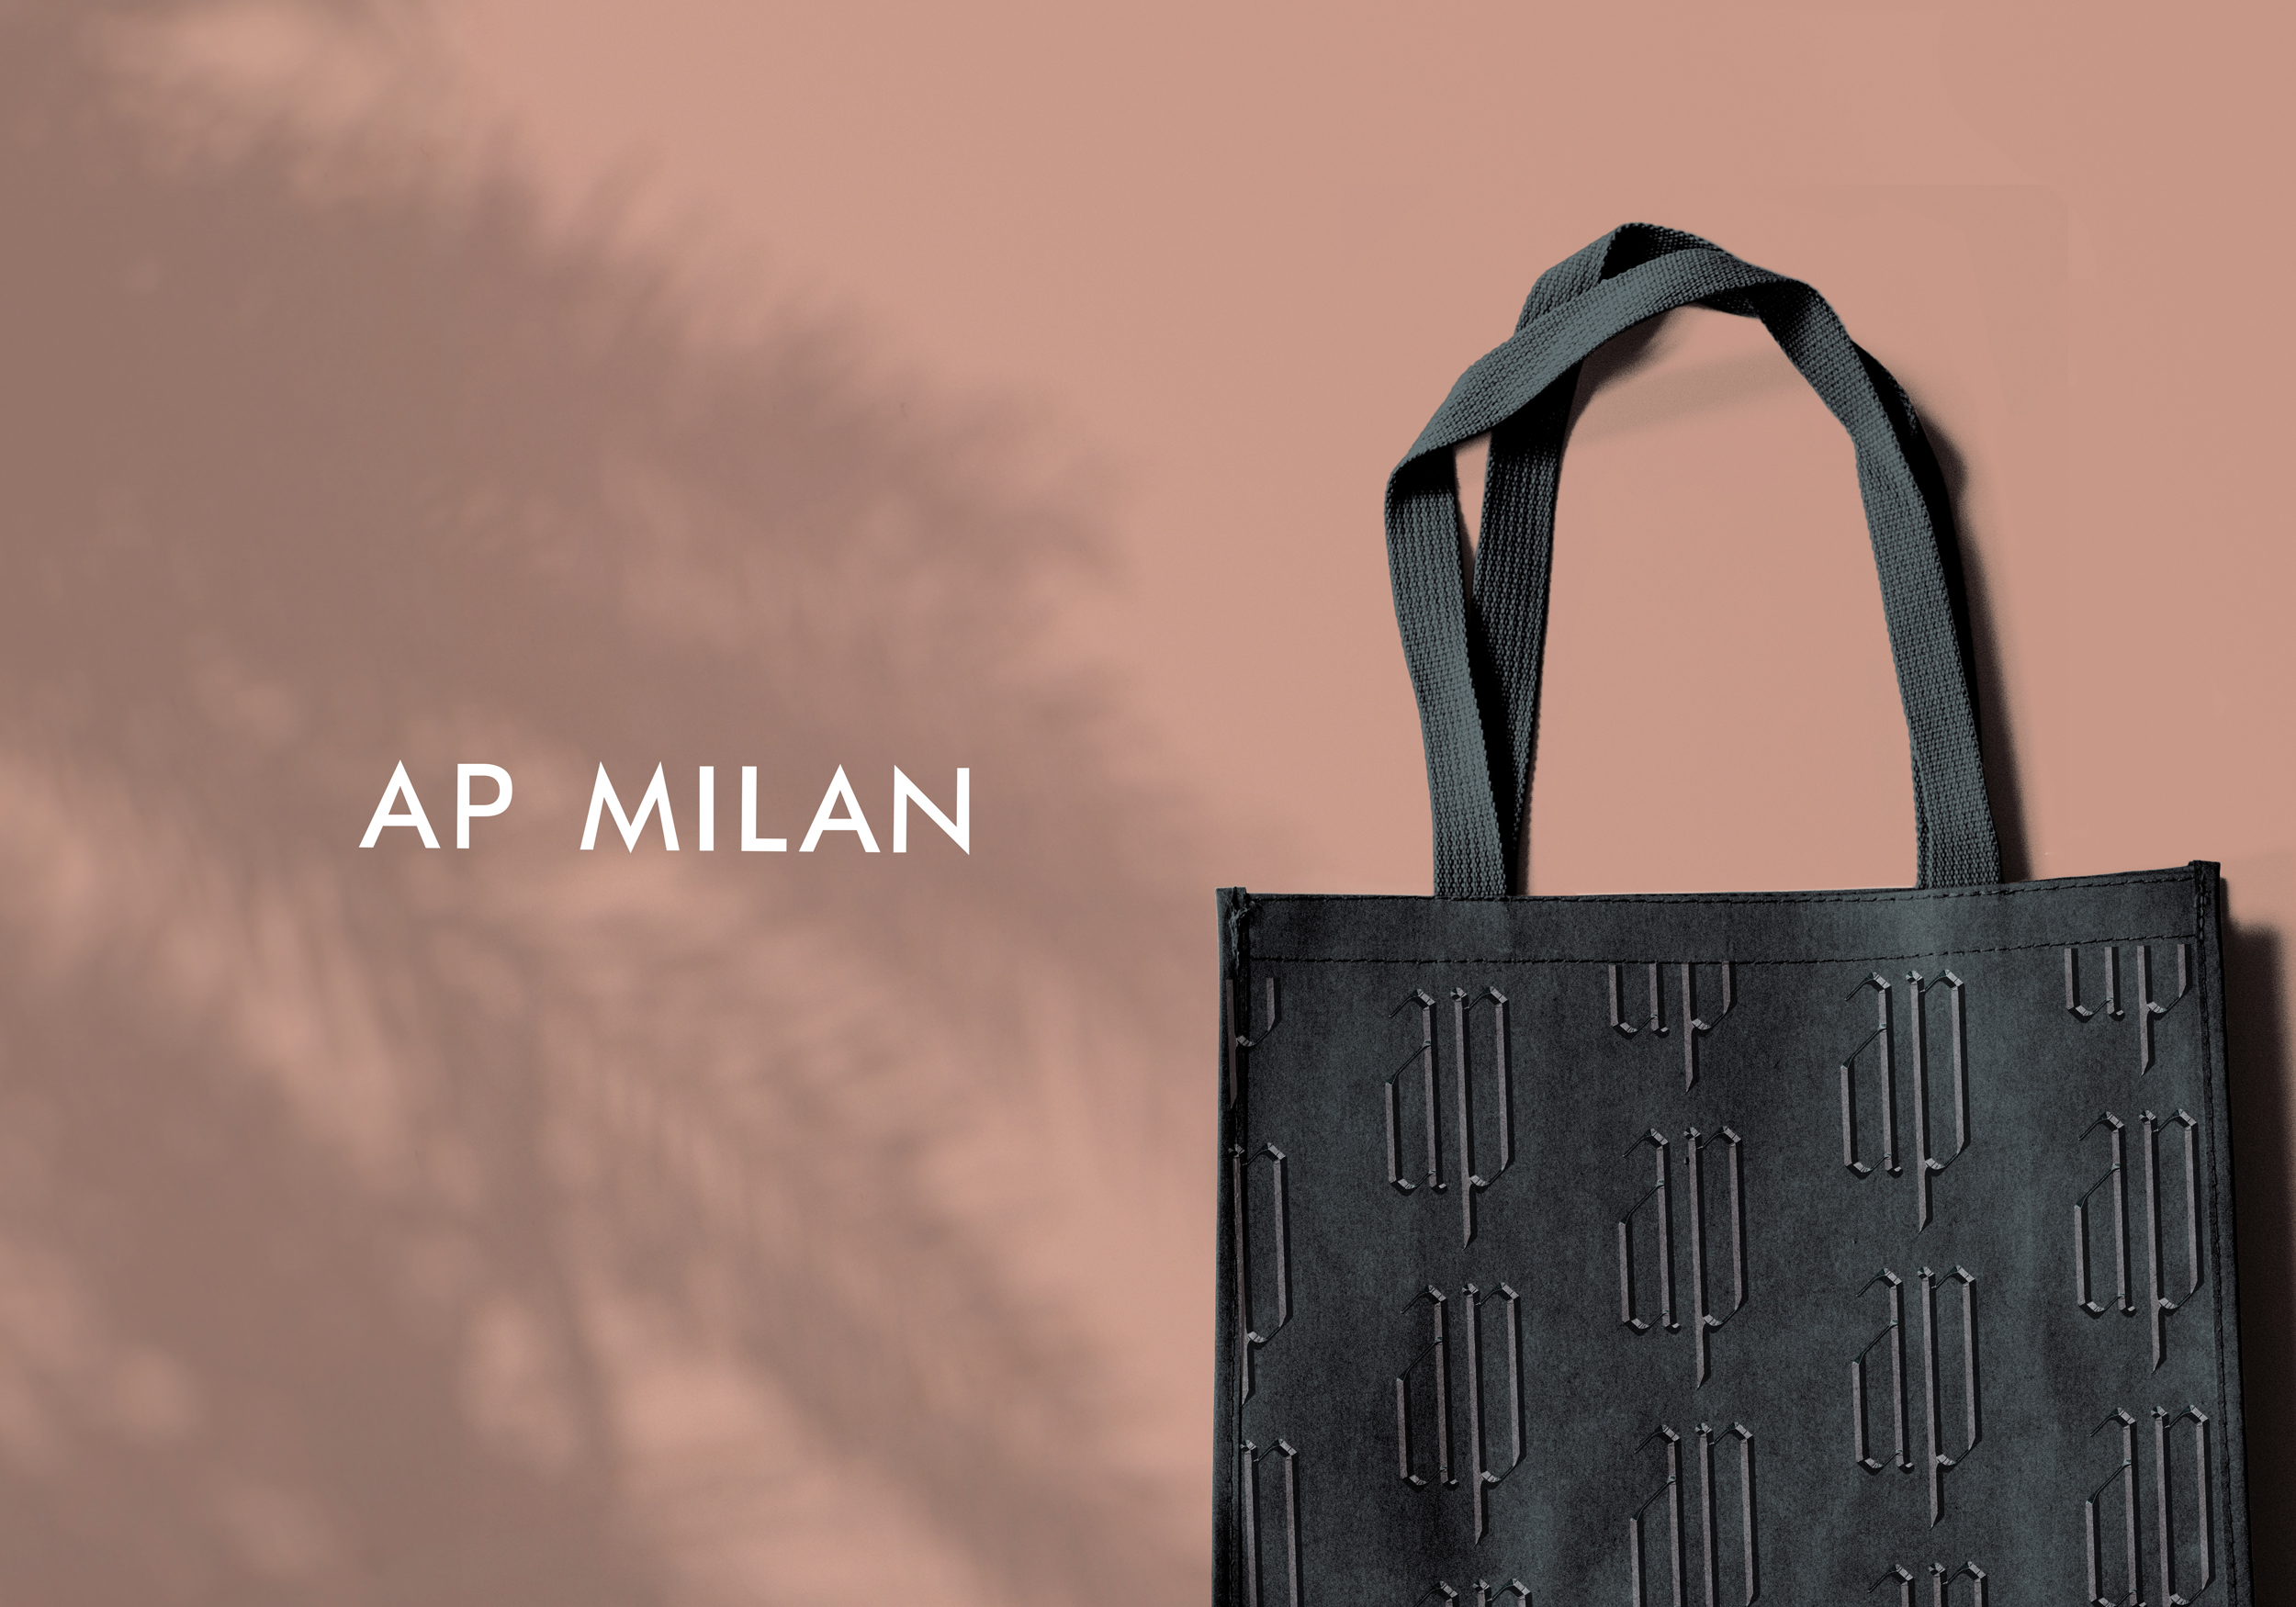 Fole Presents the New Visual Identity for the New Brand AP MILAN